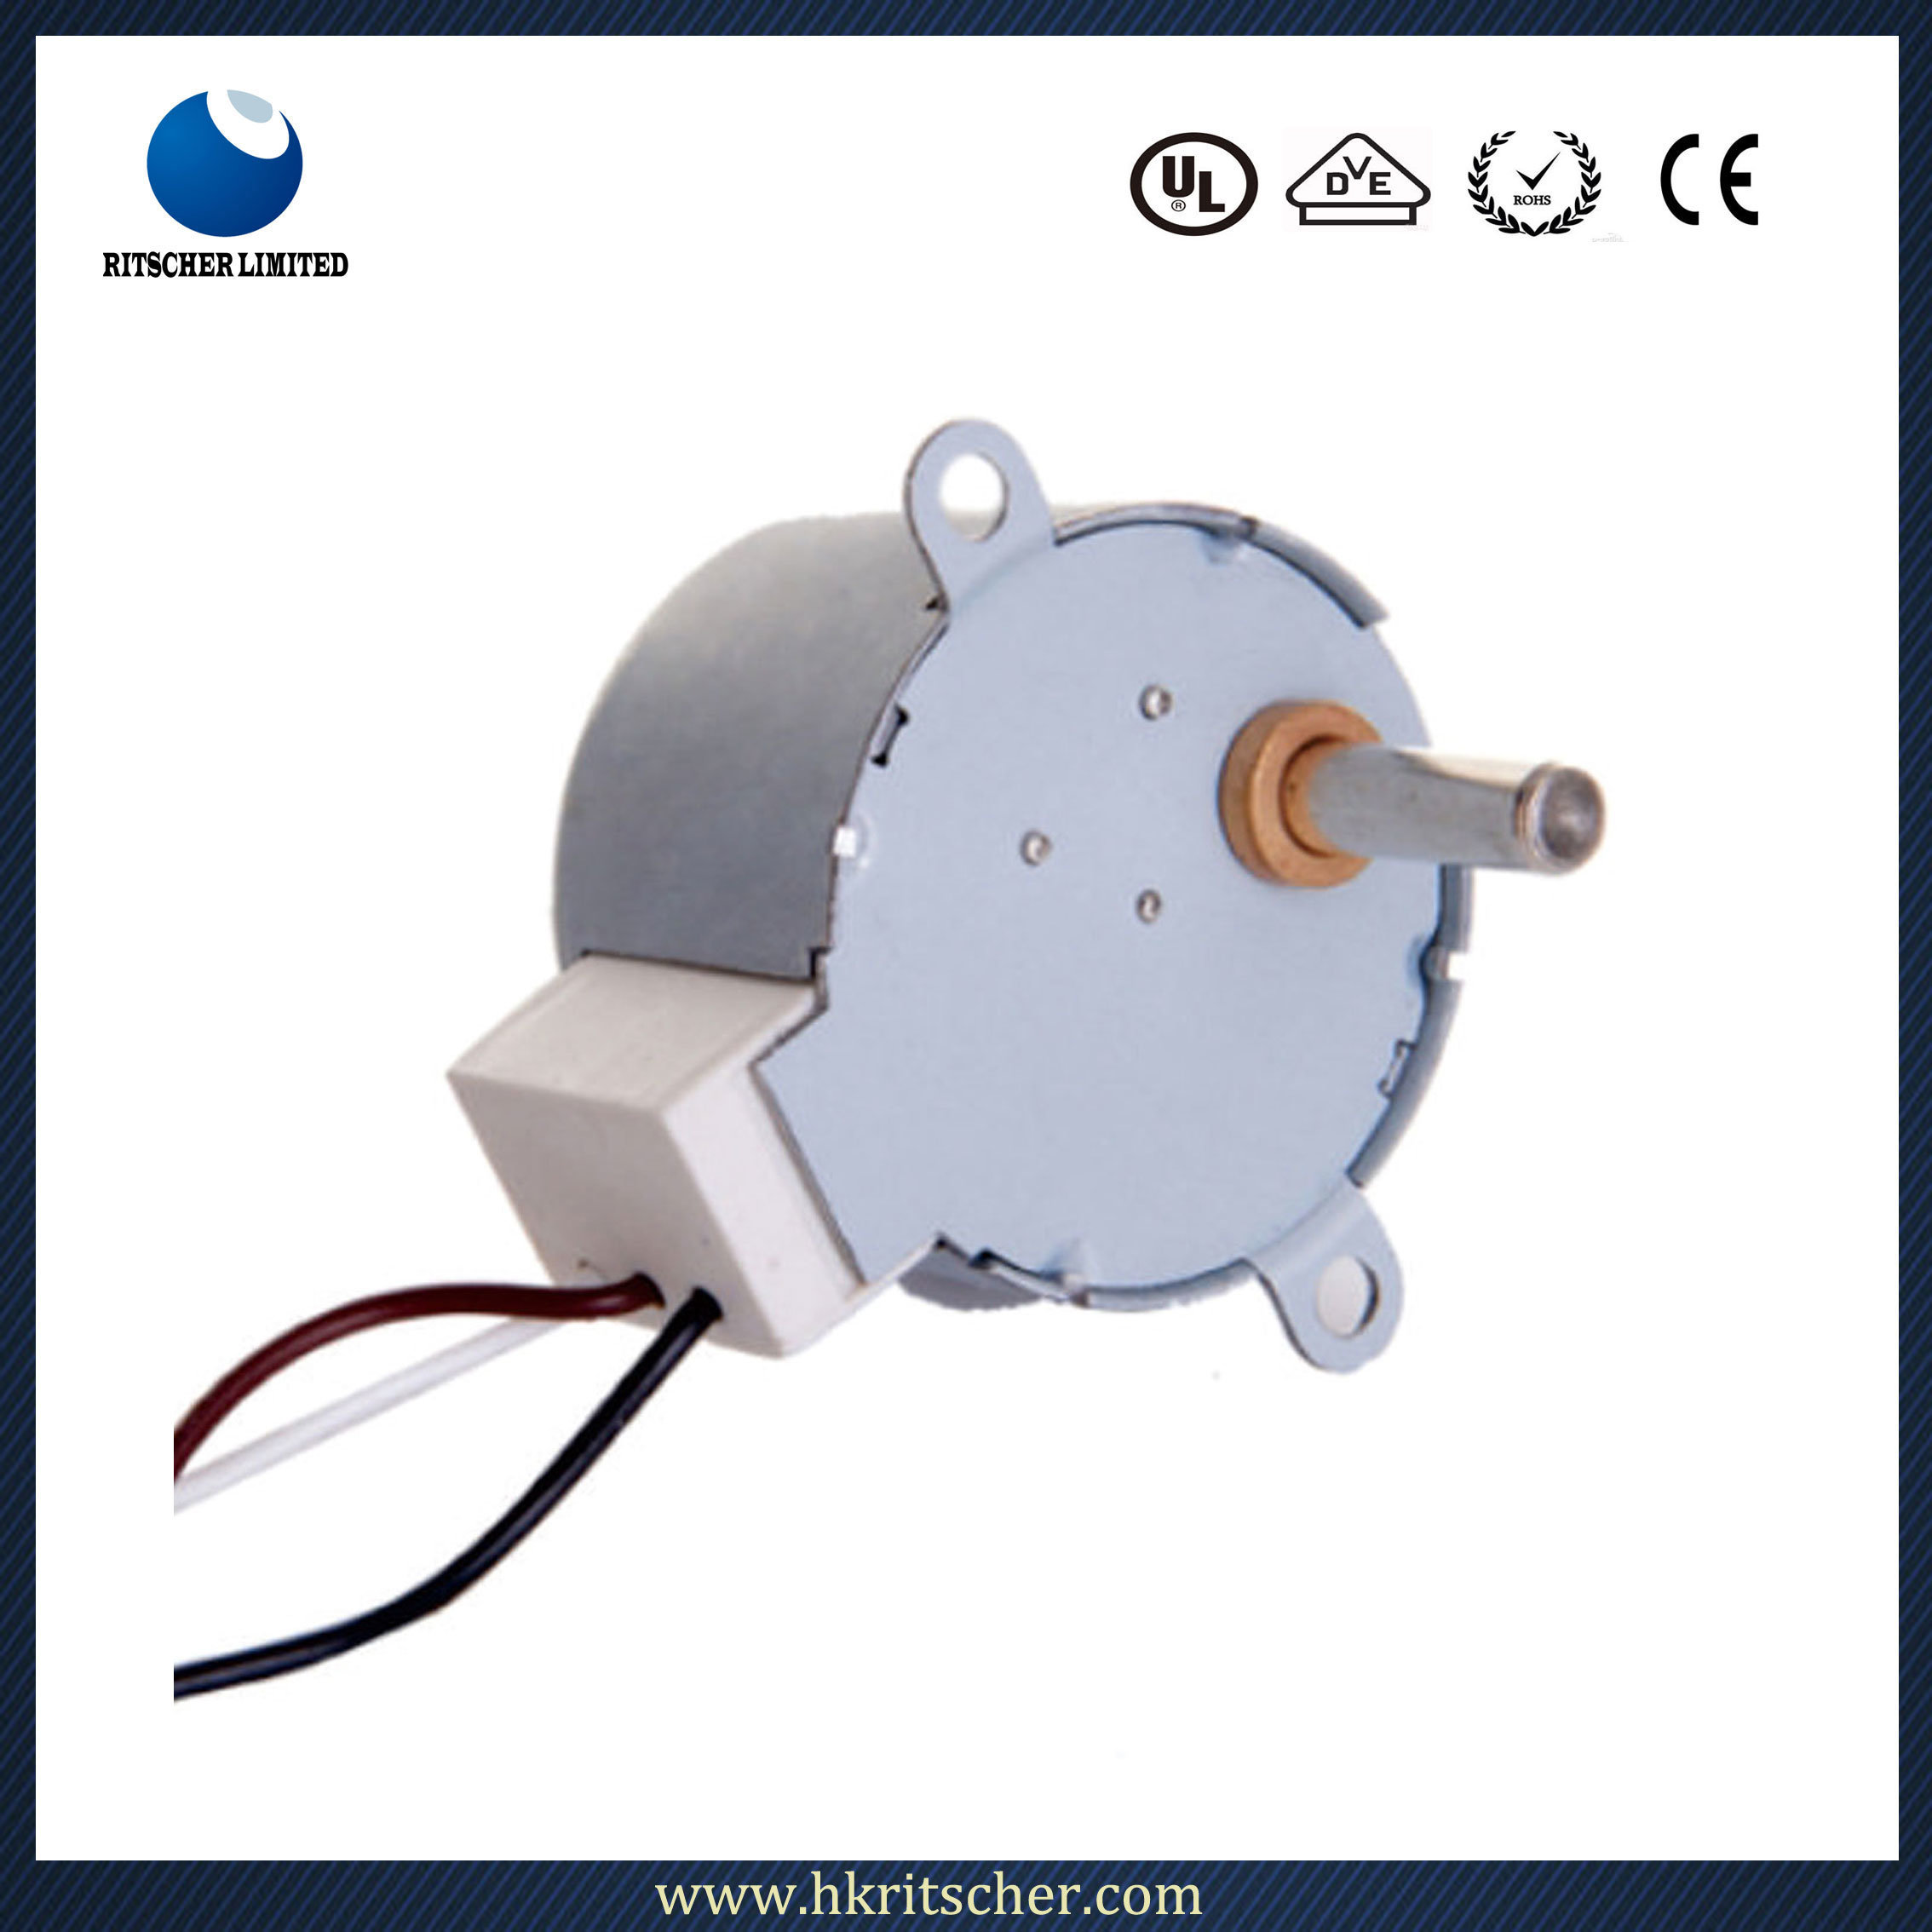 2-10W Wiper Motor with Low Noise